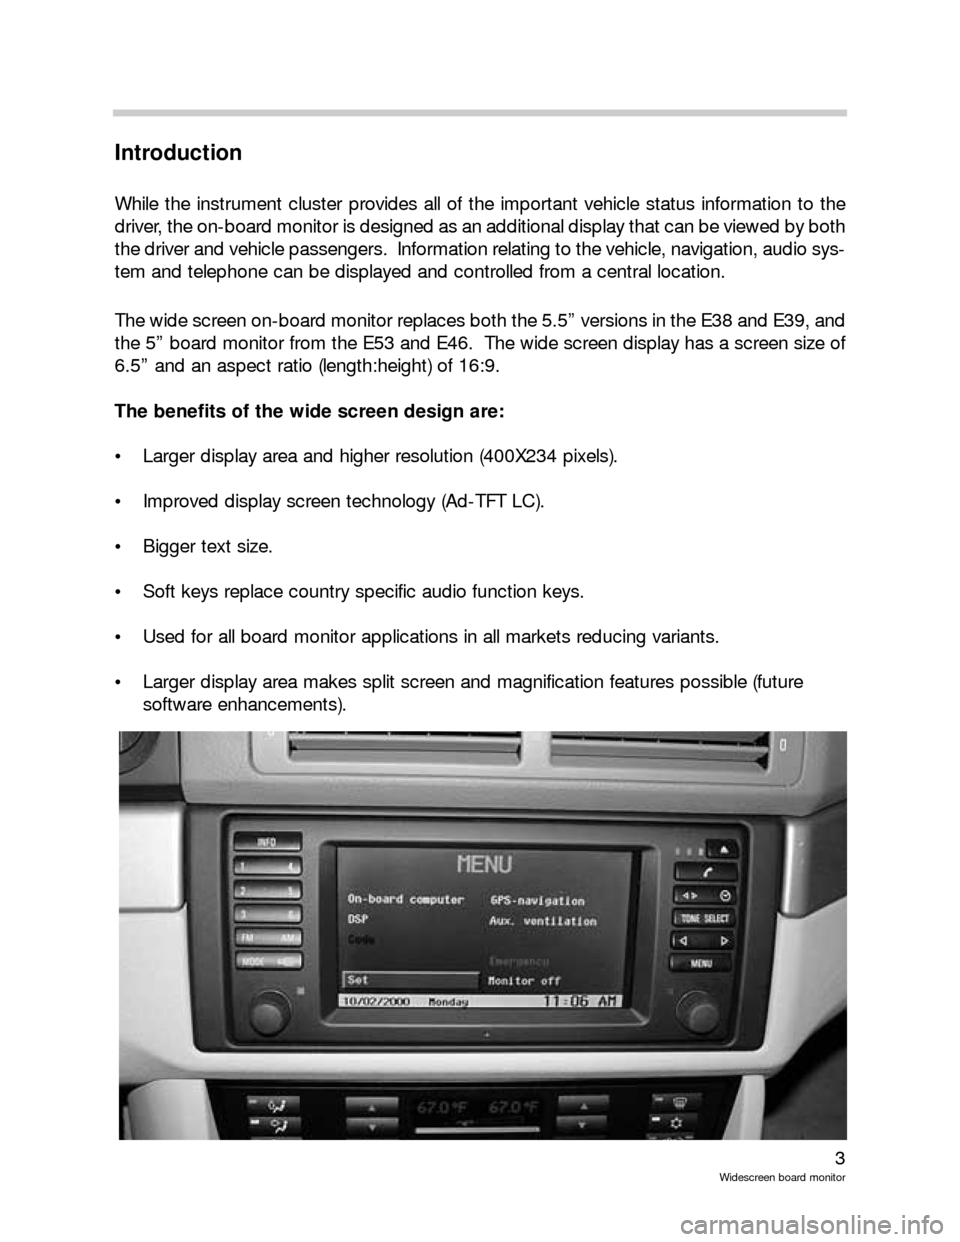 BMW 5 SERIES 2001 E39 Wide Screen On Board Monitor Workshop Manual, Page 3